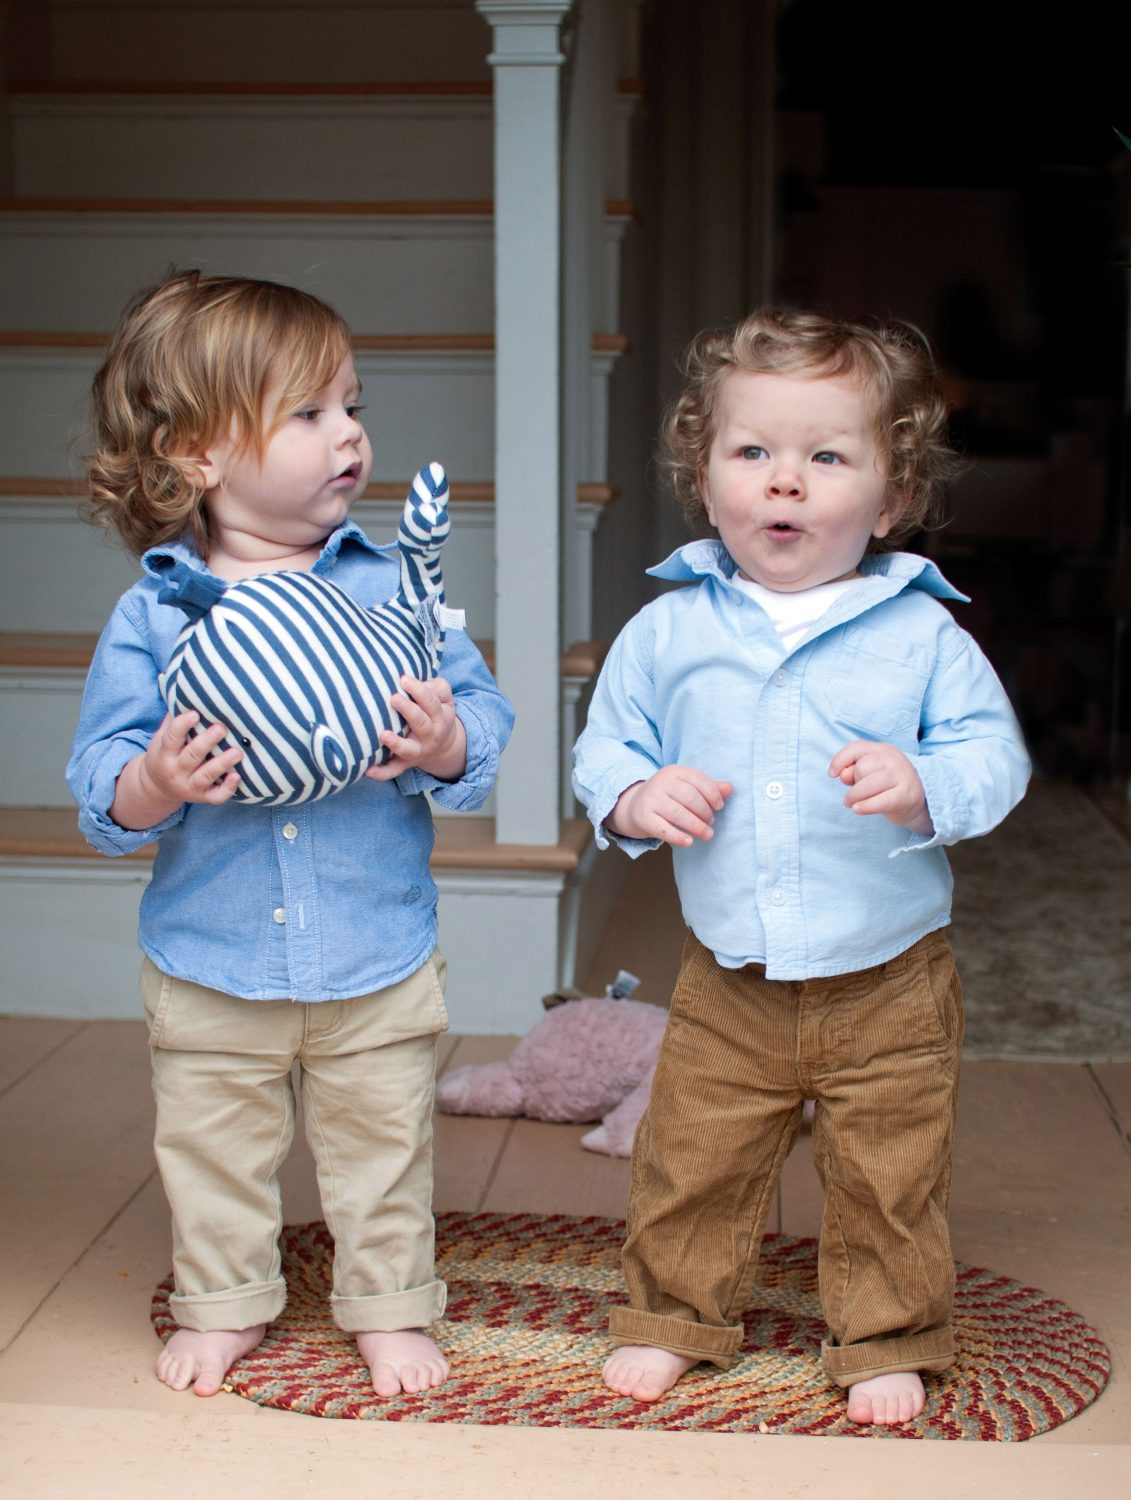 two toddlers standing next to each other smiling